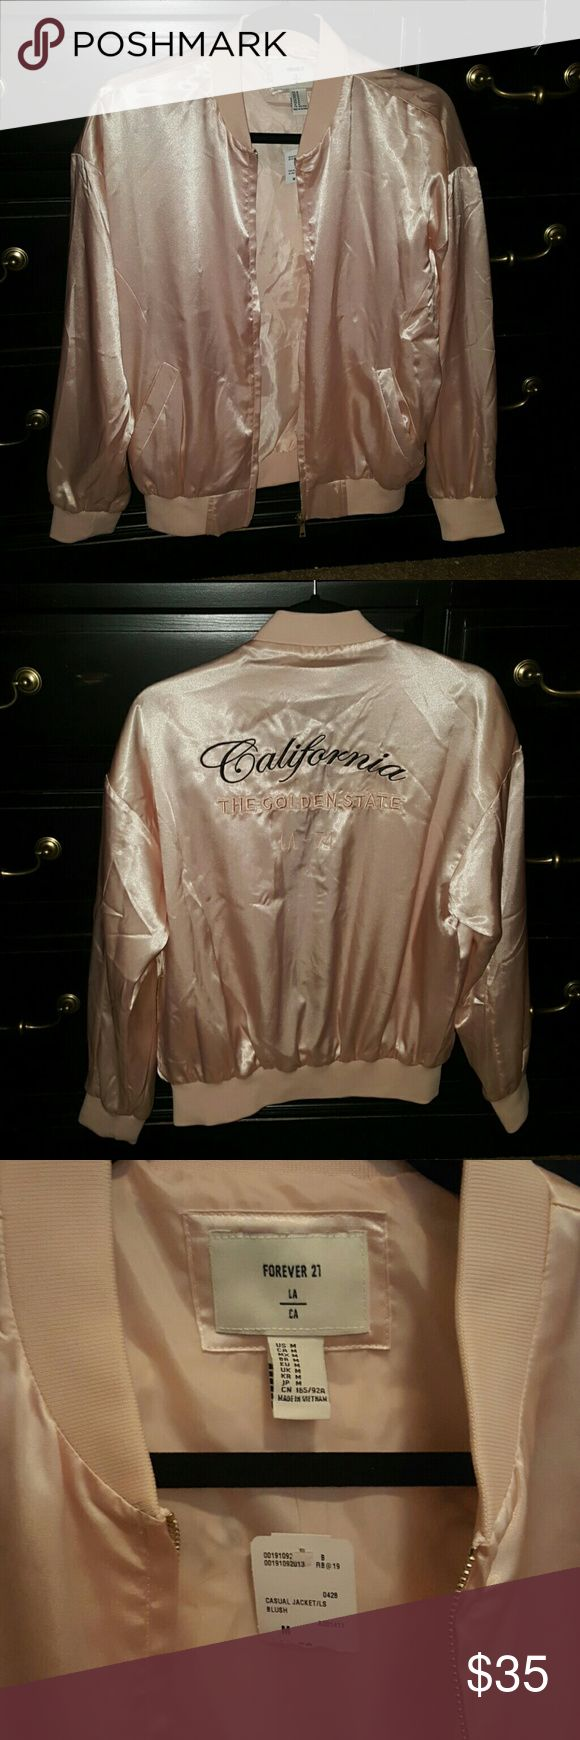 Forever 21 pink satin bomber jacket, California Forever 21 satin bomber jacket Soft baby pink color Broidered on the back California the golden state LA -74  Brand new with tags. Recieved as a gift for christmas but past the return date.  Size medium. Tags still attached Forever 21 Jackets & Coats